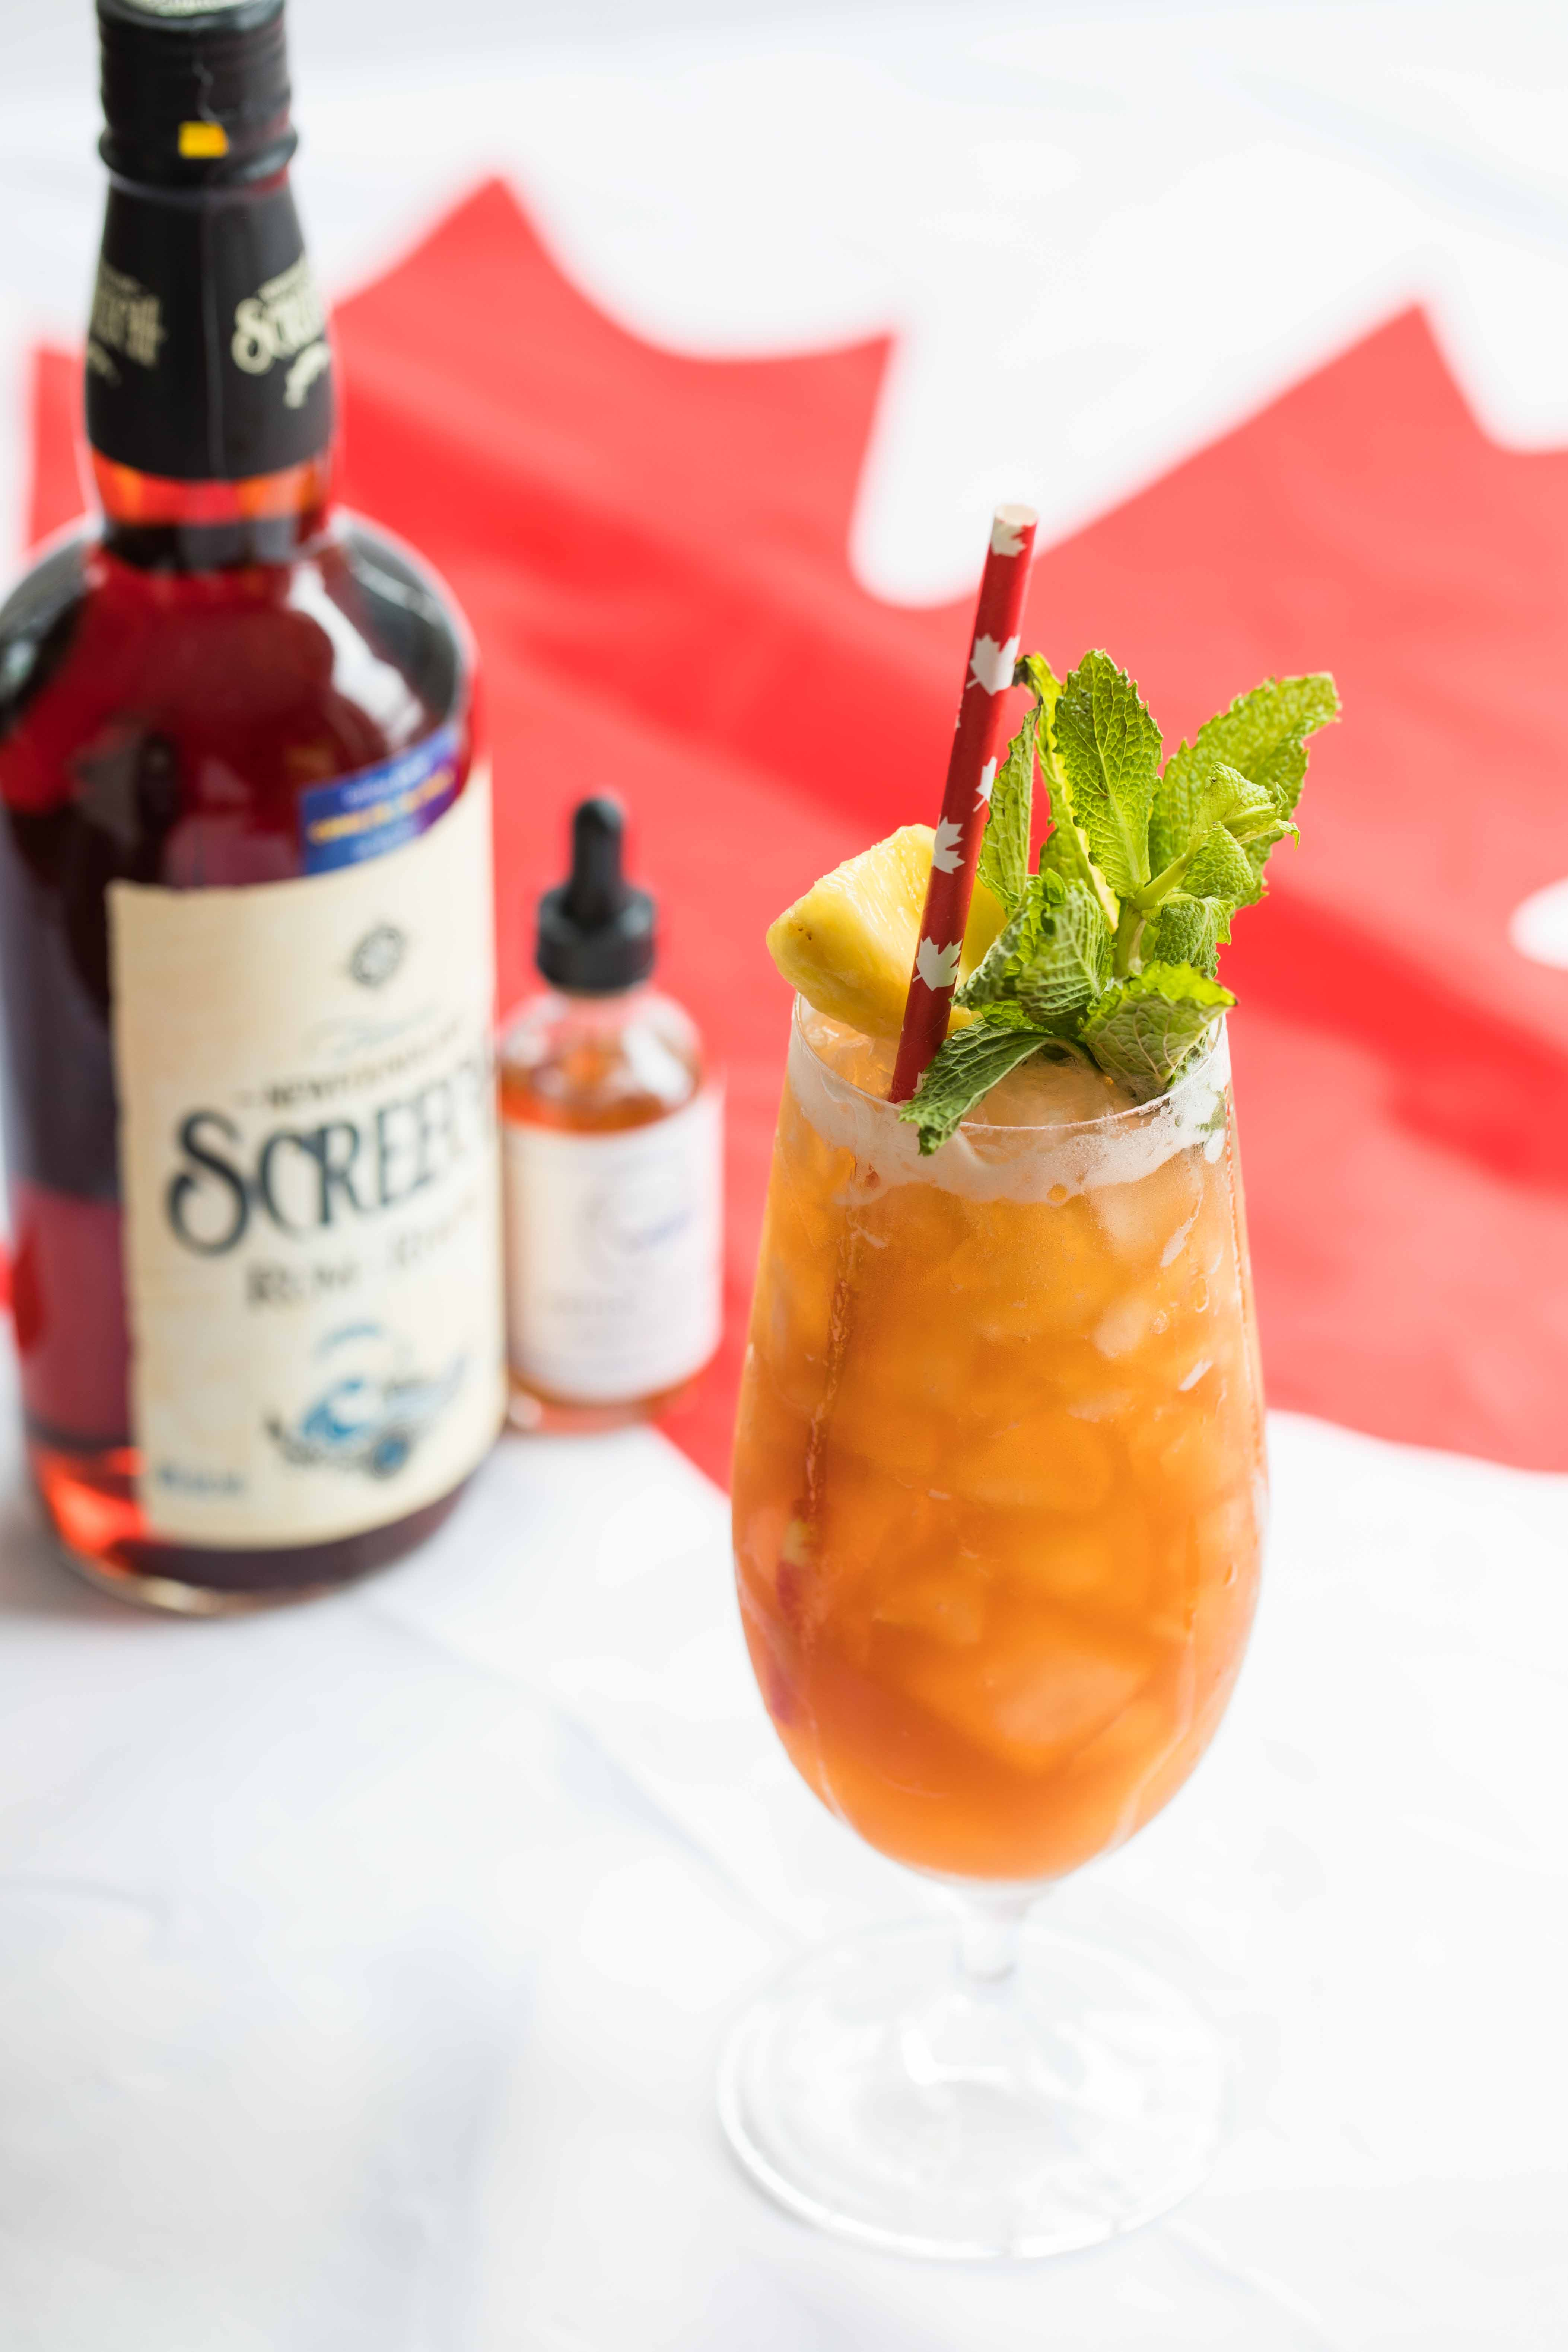 Exploring Canada with Cocktails: Newfoundland Screech Rum Cocktail